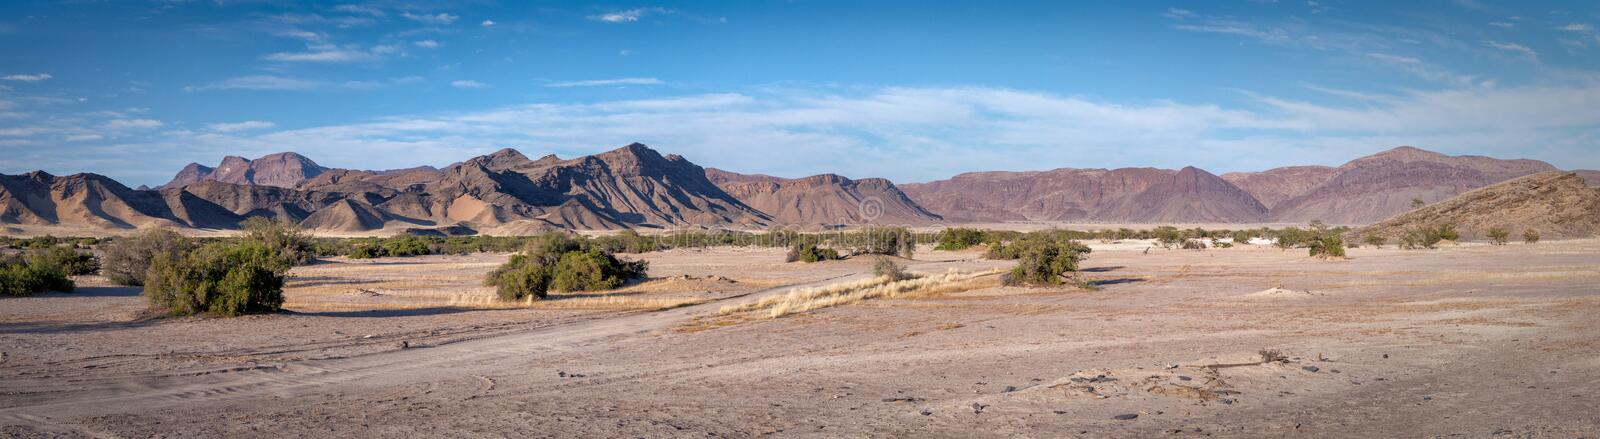 Palmwag Concession desert panoramic view. Panoramic view of the desert landscape Palmwag Concession in Namibia royalty free stock photo